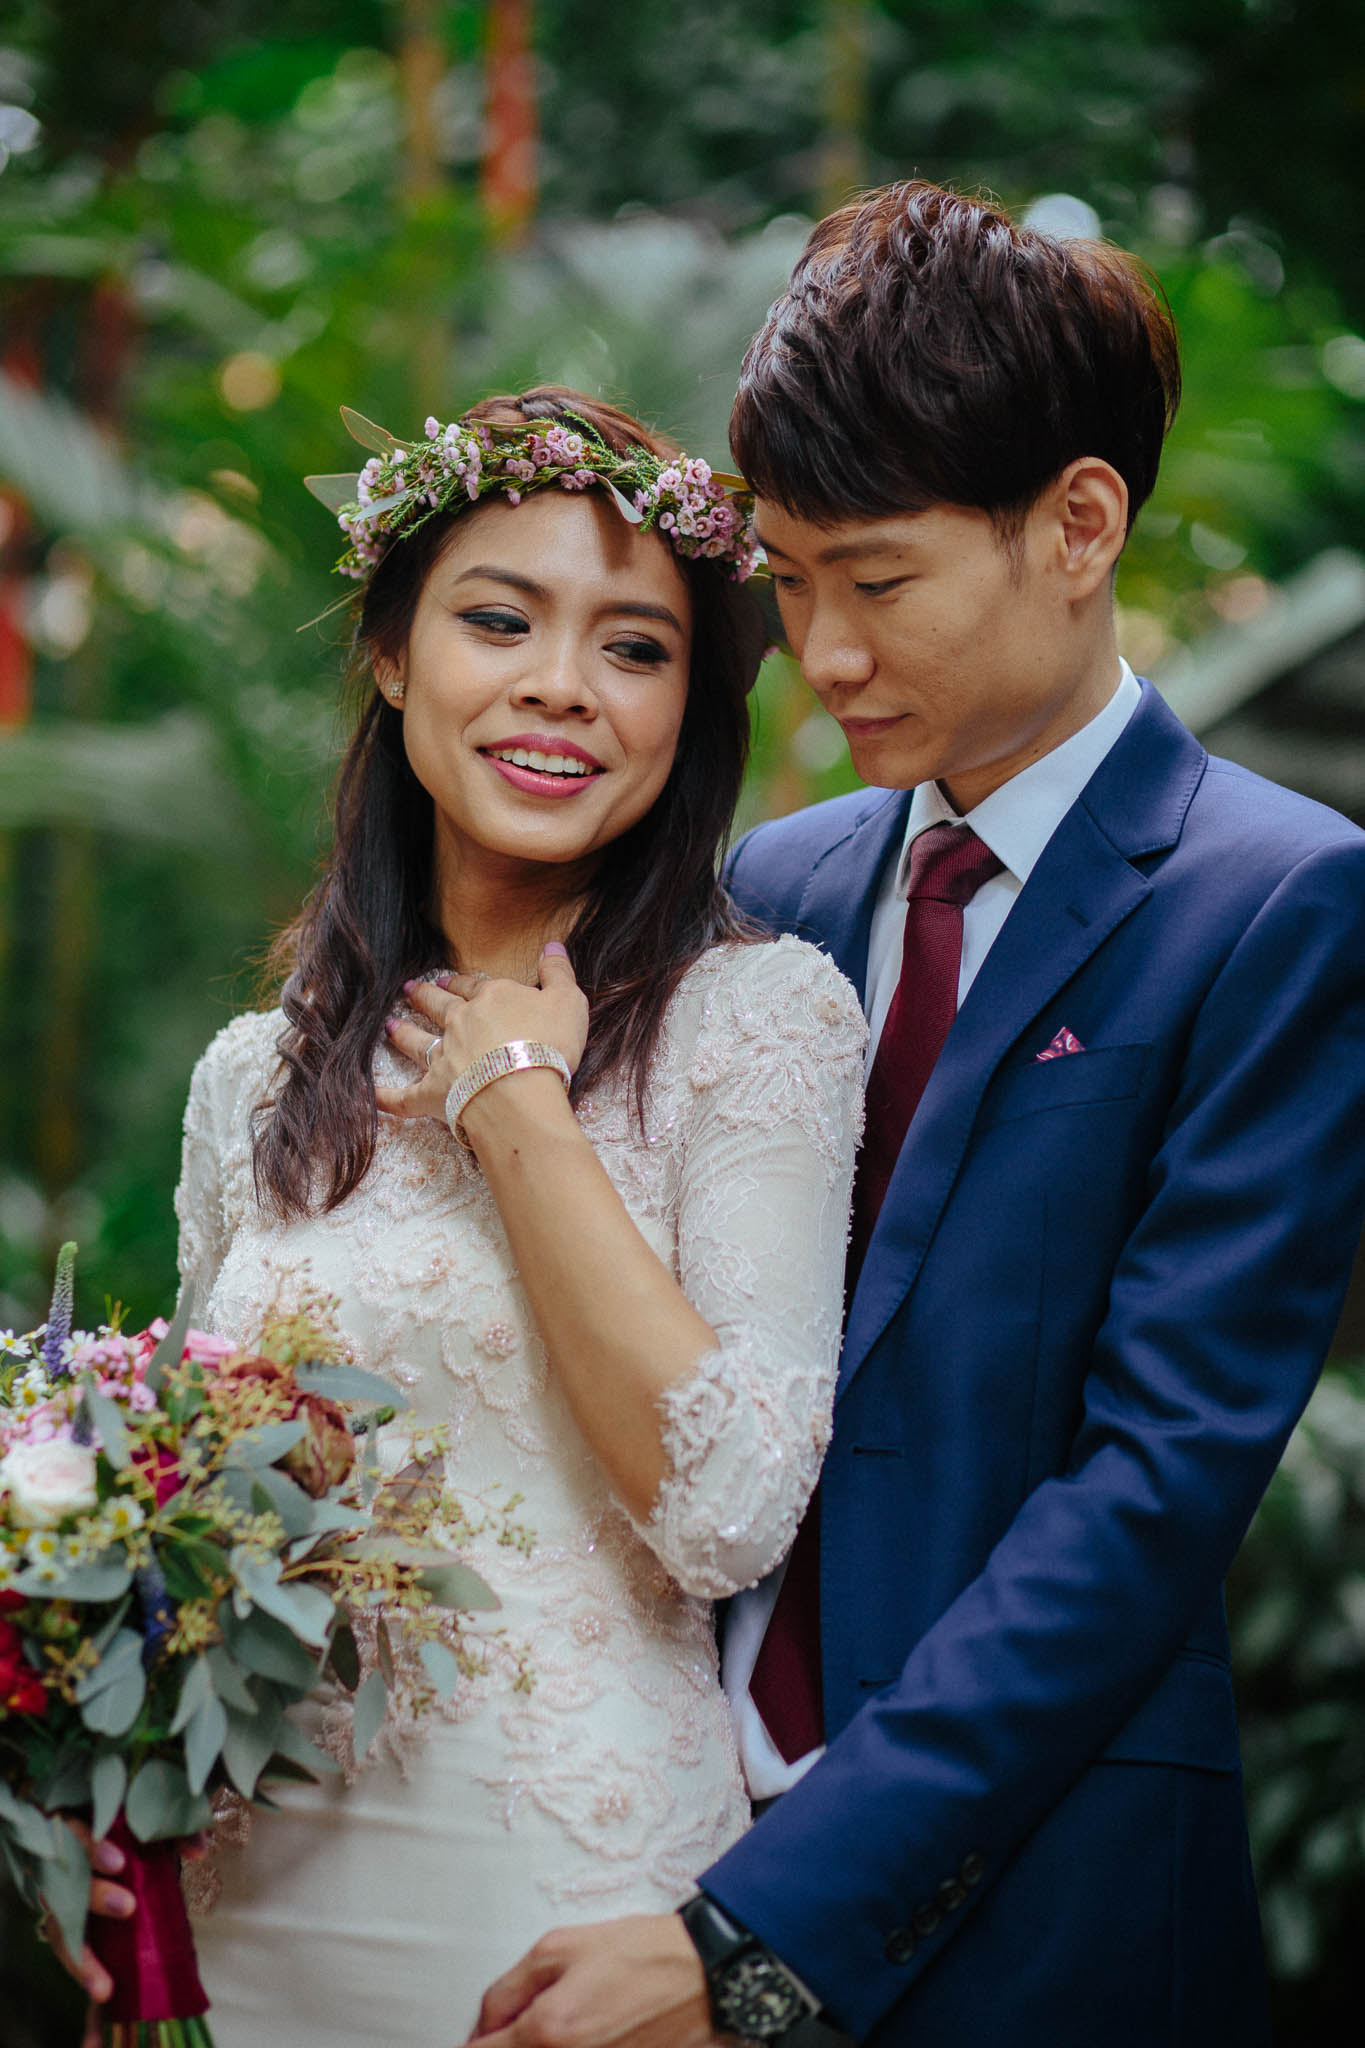 singapore-wedding-photographer-we-made-these-2016-selects-134.jpg